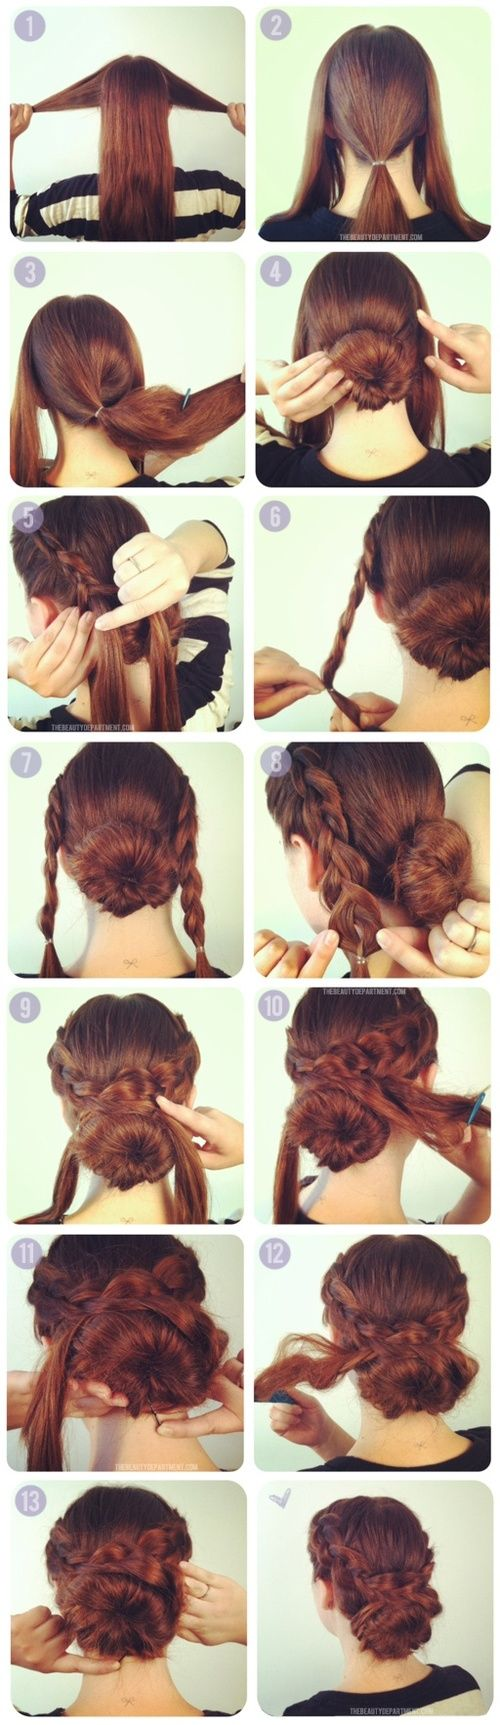 Hairstyles of the Regency to Victorian / braided cross bun updo. I love this!